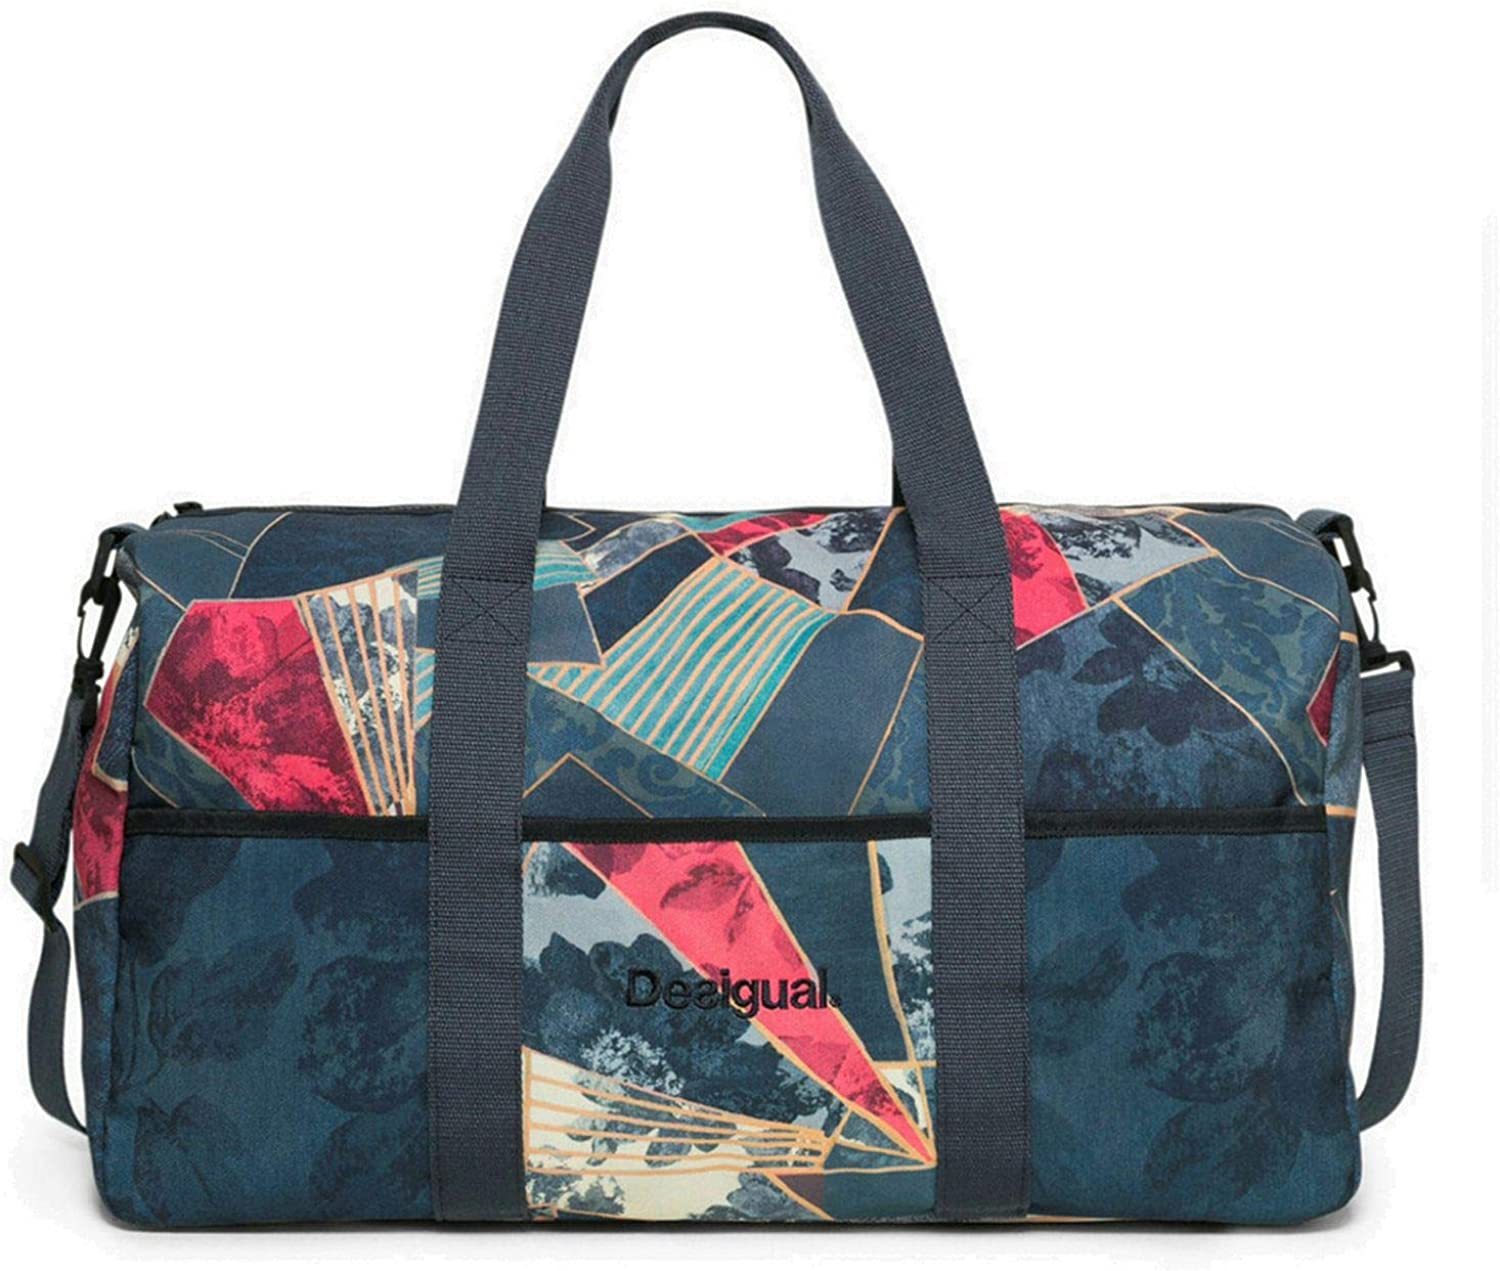 Desigual Sac 17WXRW20 Bols Gym Bag Dark Denim 5188 Legion